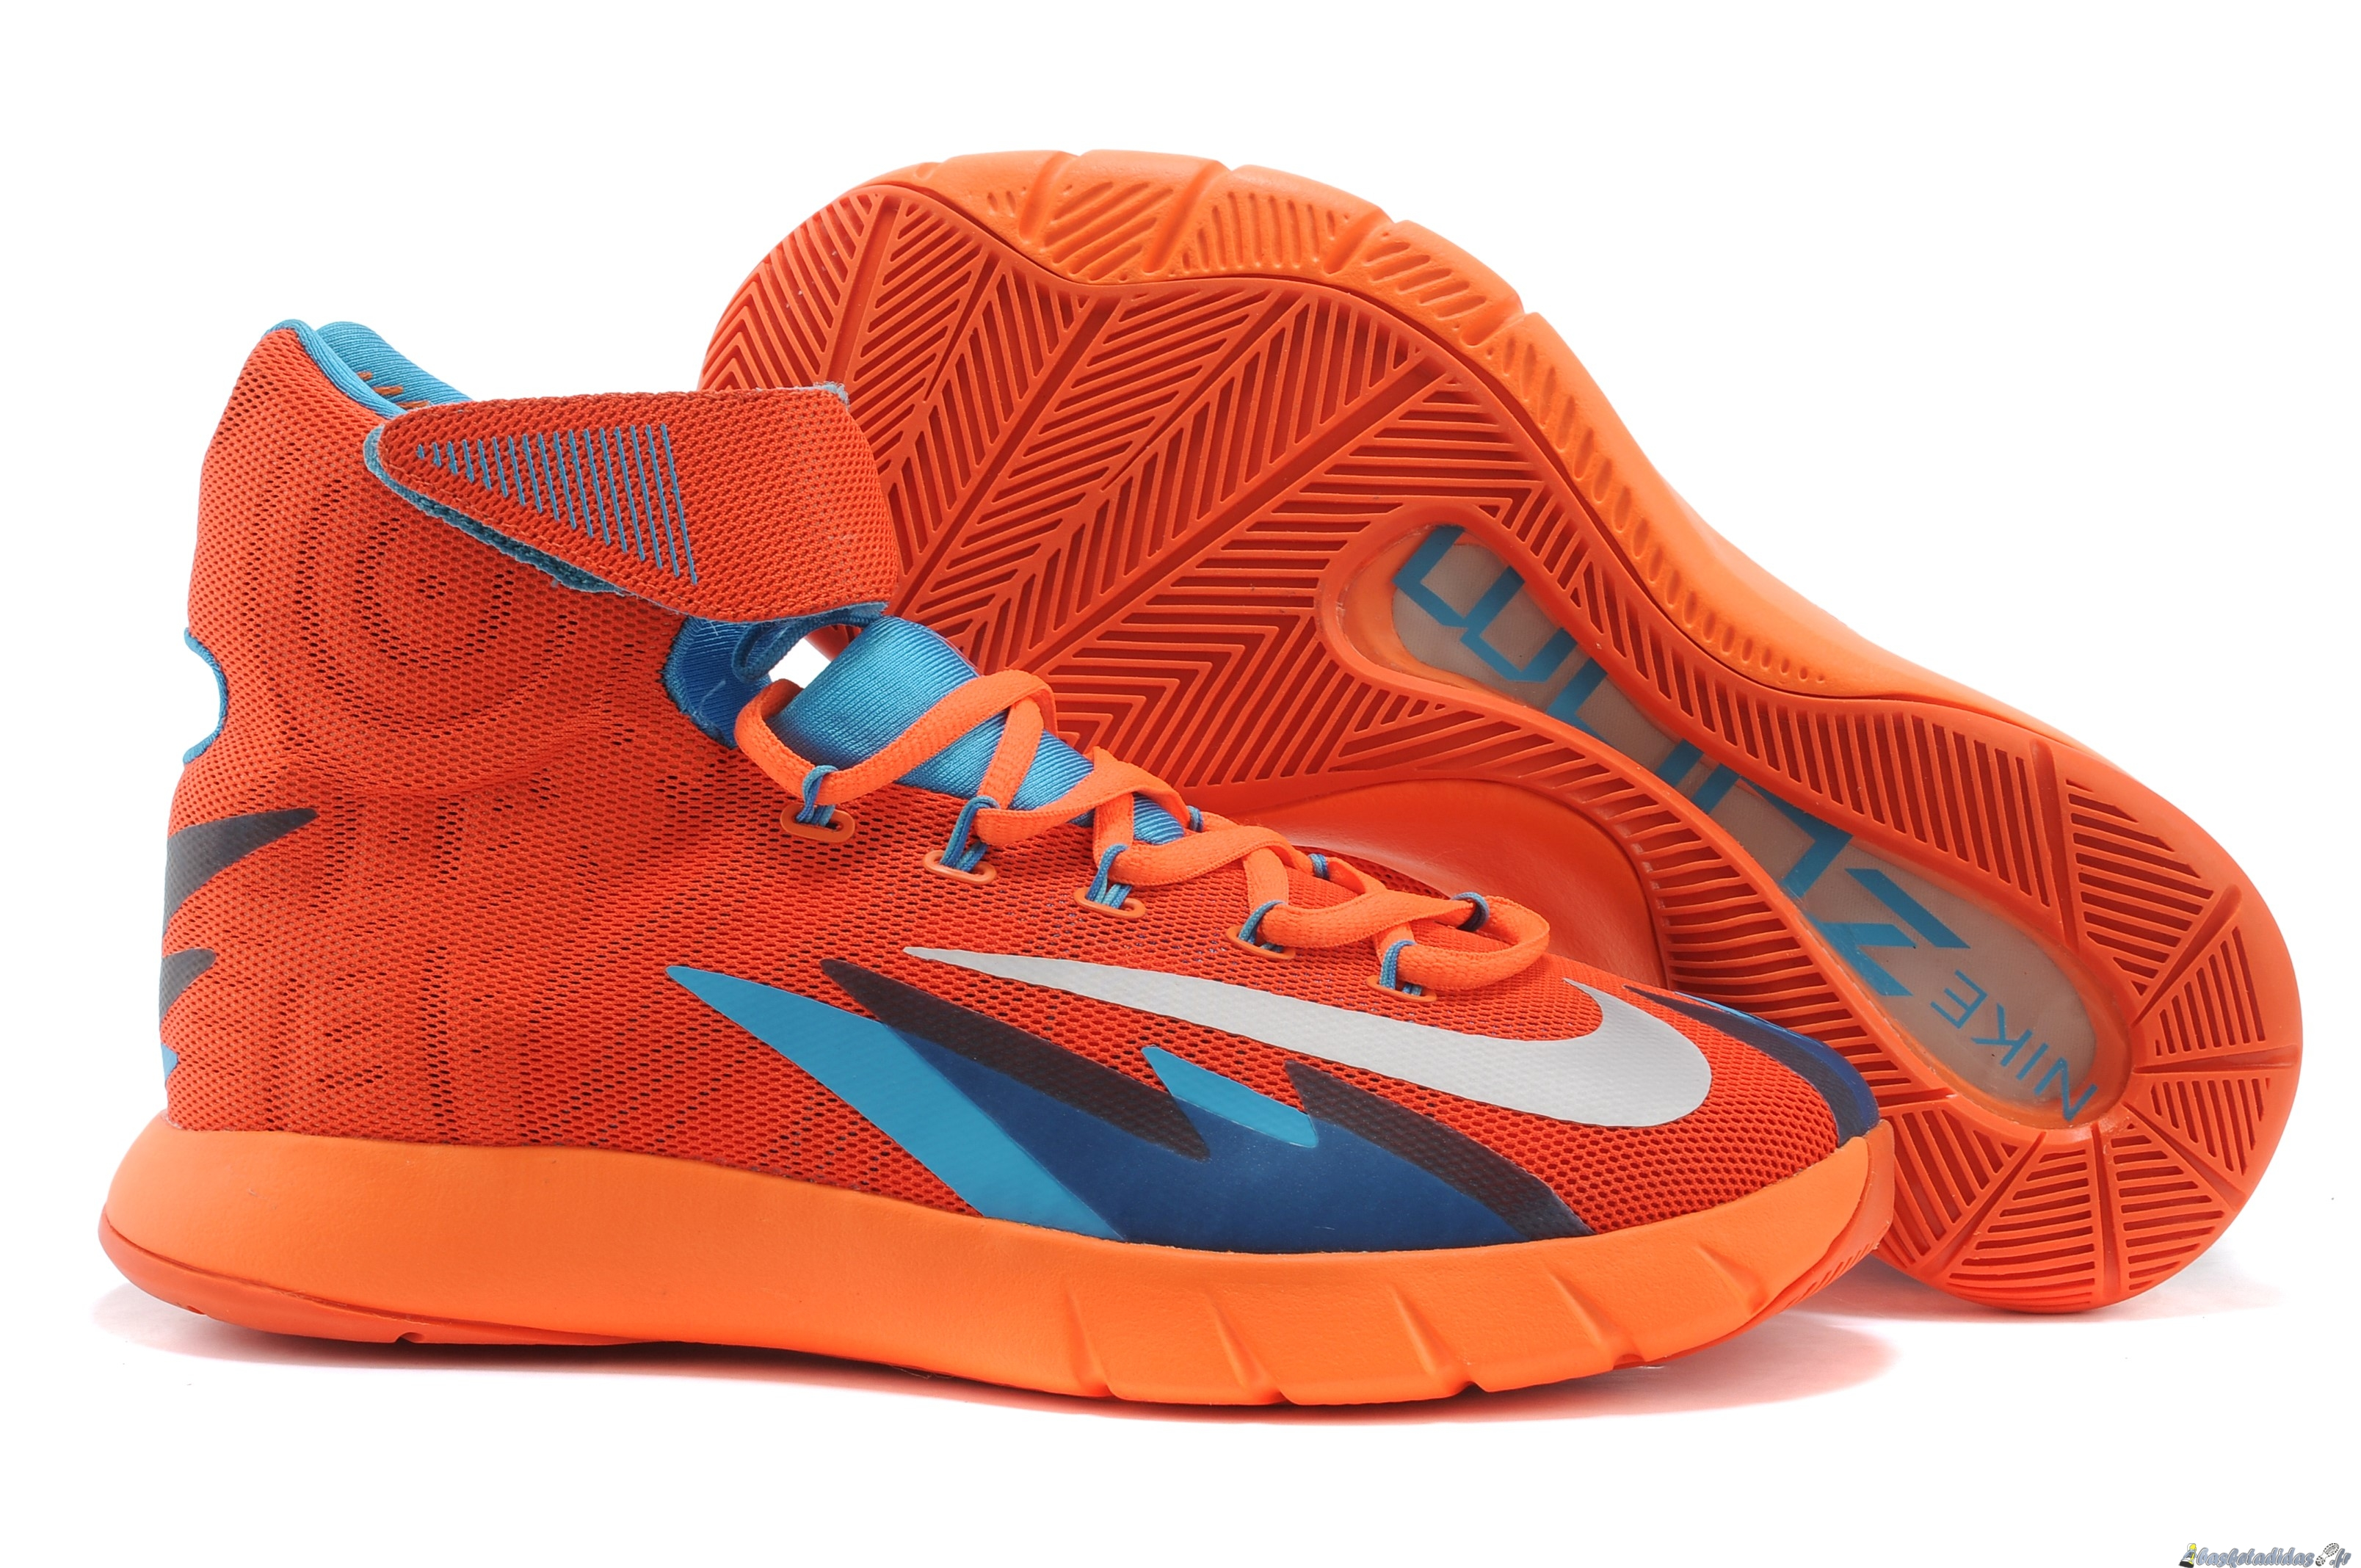 Chaussure de Basket Nike Zoom Hyperrev Kyrie Irving Homme Orange Gris